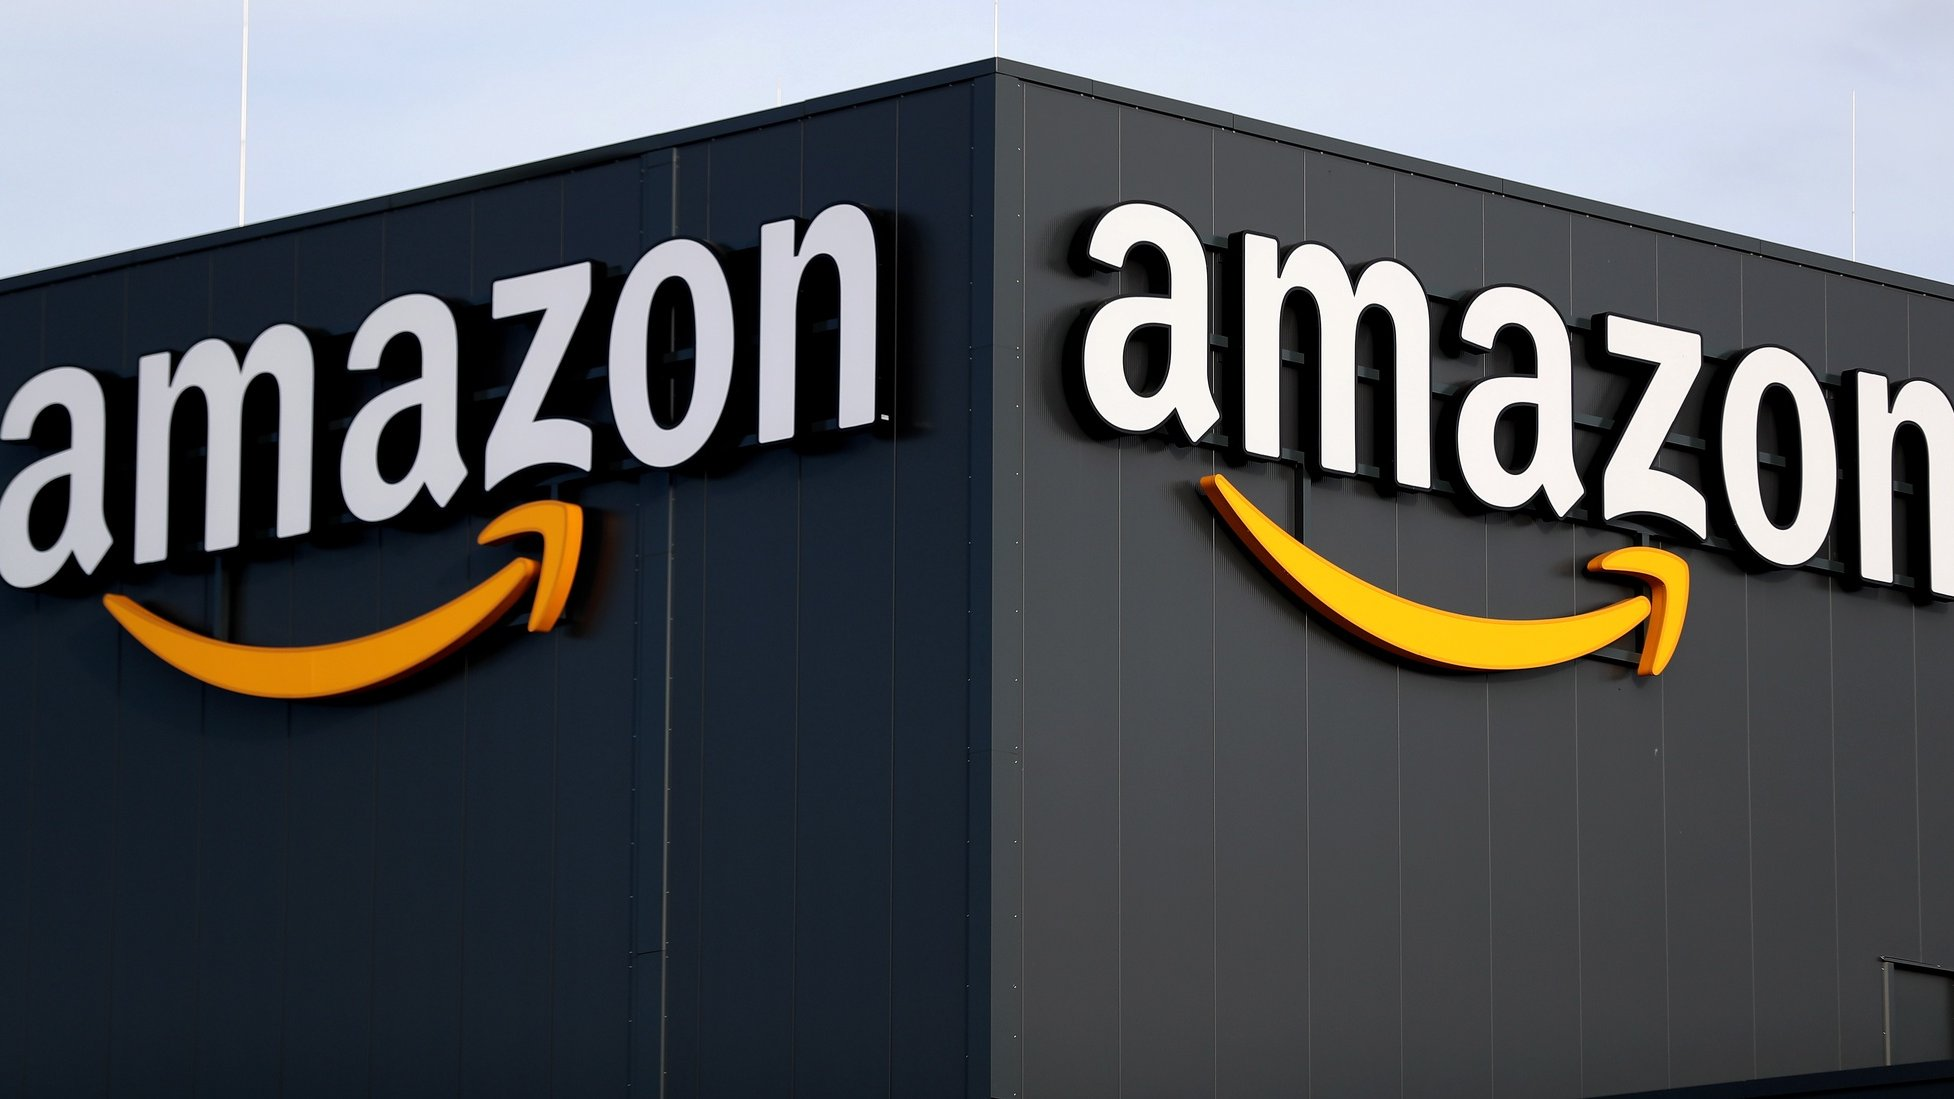 epa08873754 (FILE) A general view of the Amazon logistic and distribution center in Moenchengladbach, Germany, 17 December 2019 (reissued 10 December 2020). According to media reports on 10 December 2020, French data privacy regulator CNIL will impose over 100 million euros fines on US companies Google and Amazon for breaching EU privacy data rules. According to media reports, Google will have to pay 100 million euros and Amazon 35 million euros fines.  EPA/FRIEDEMANN VOGEL *** Local Caption *** 55834561